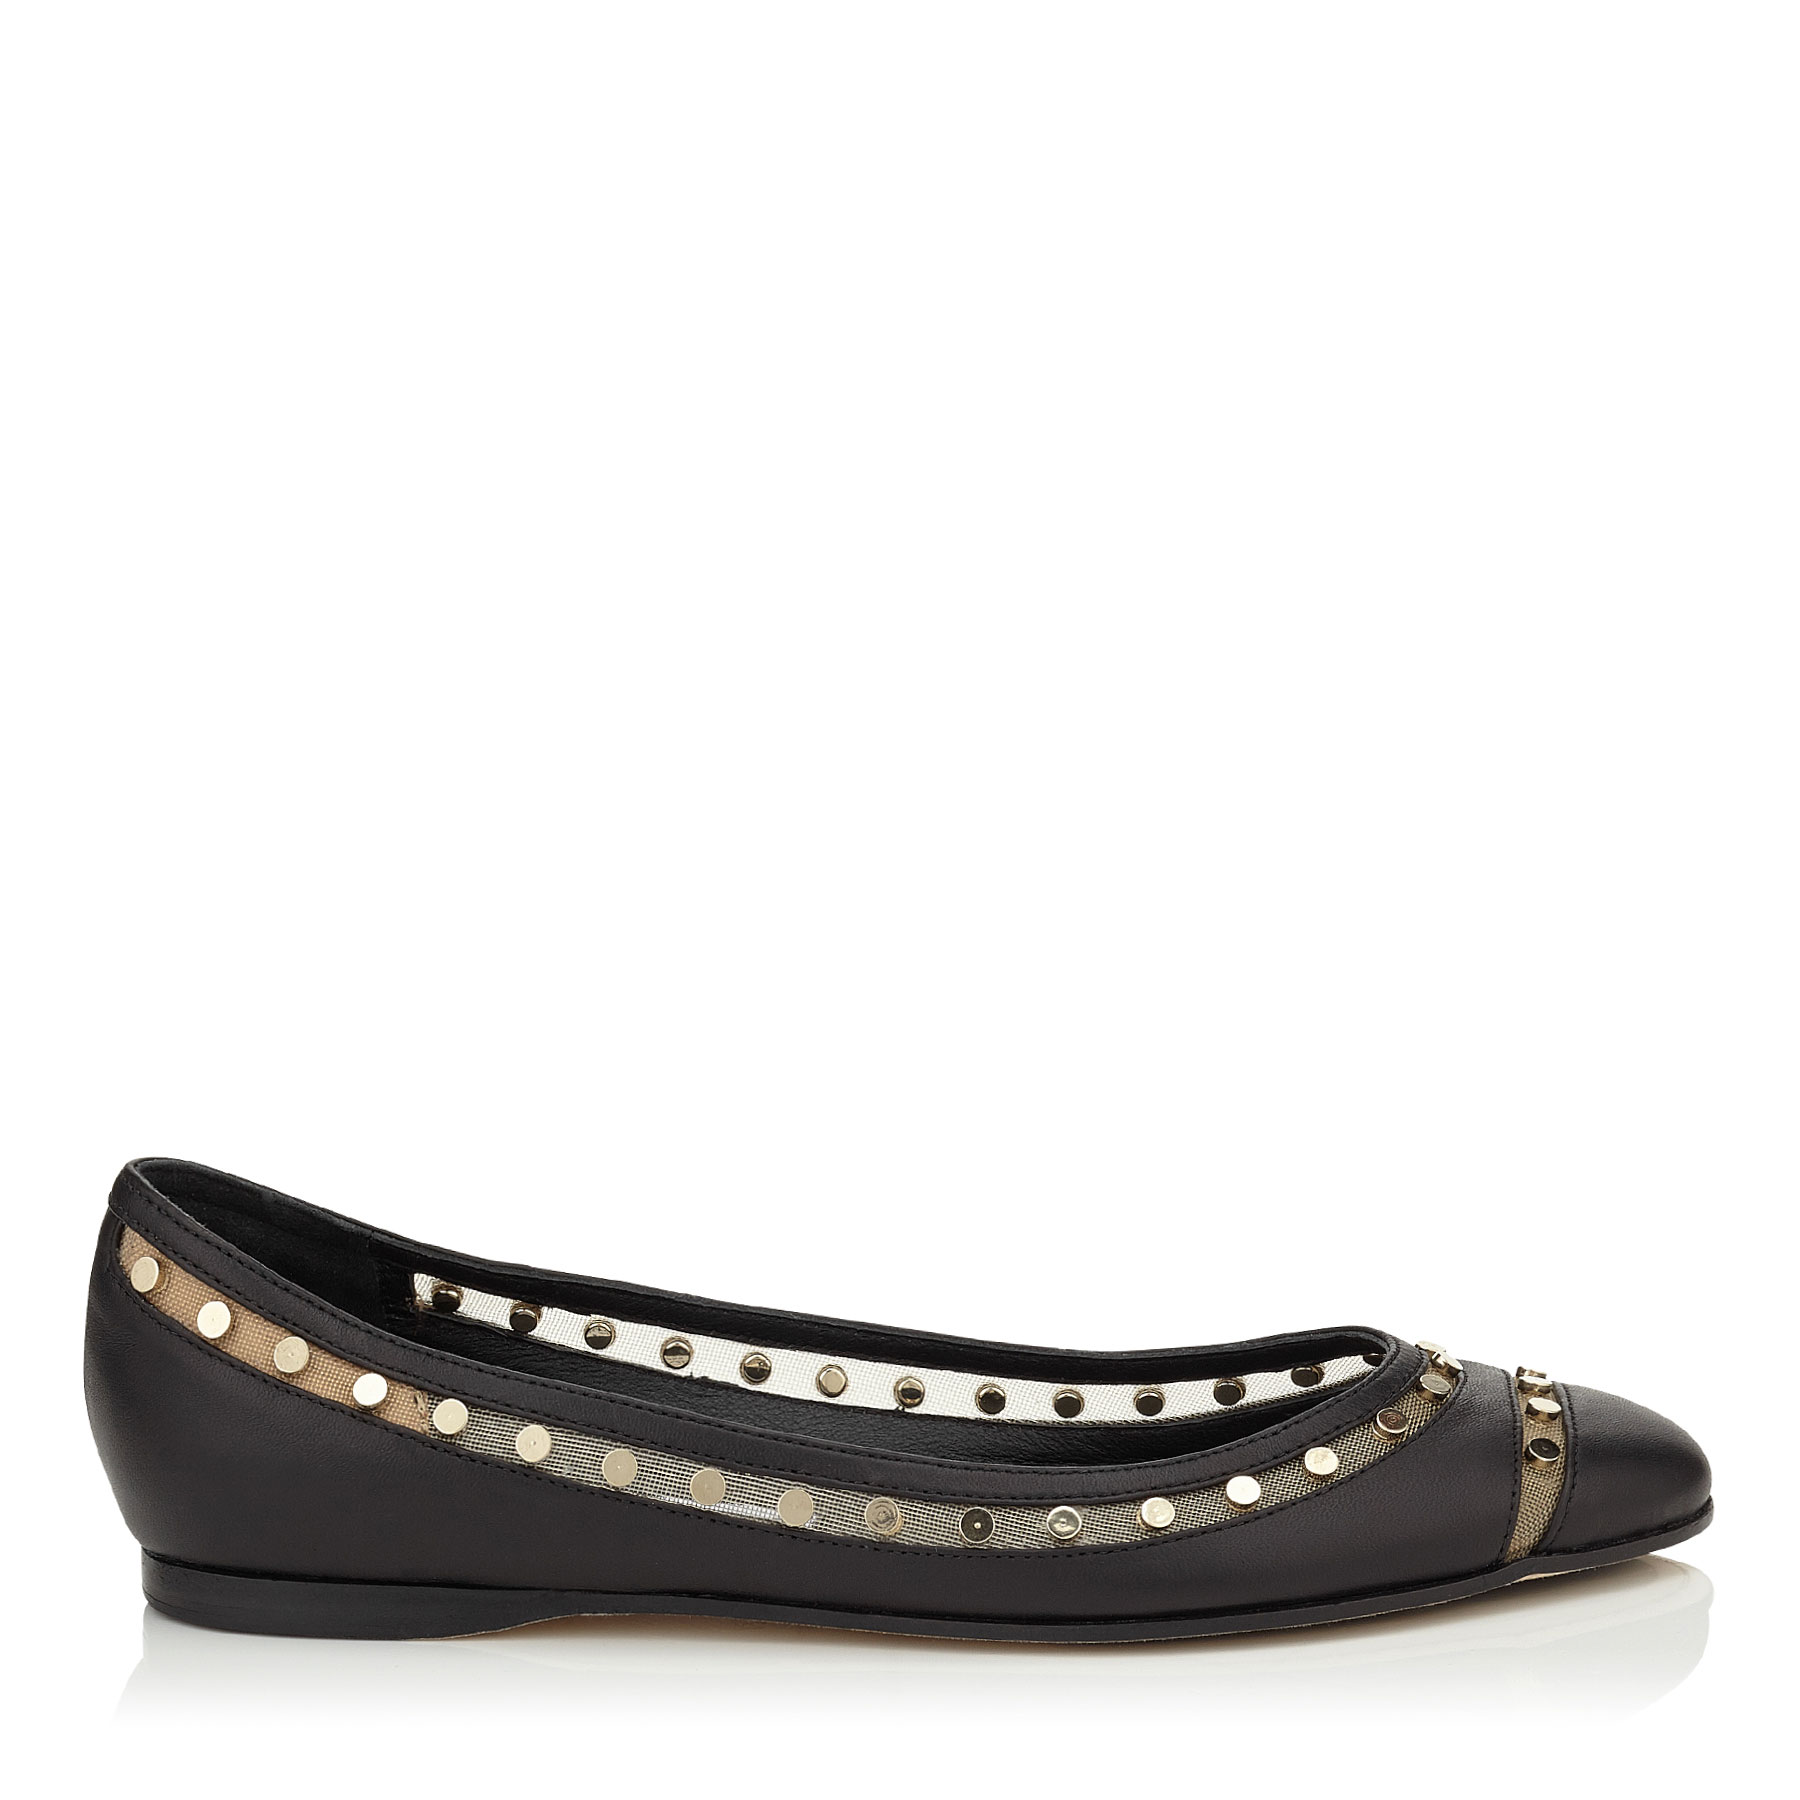 WES FLAT Black Nappa with Studded Mesh Ballet Flats